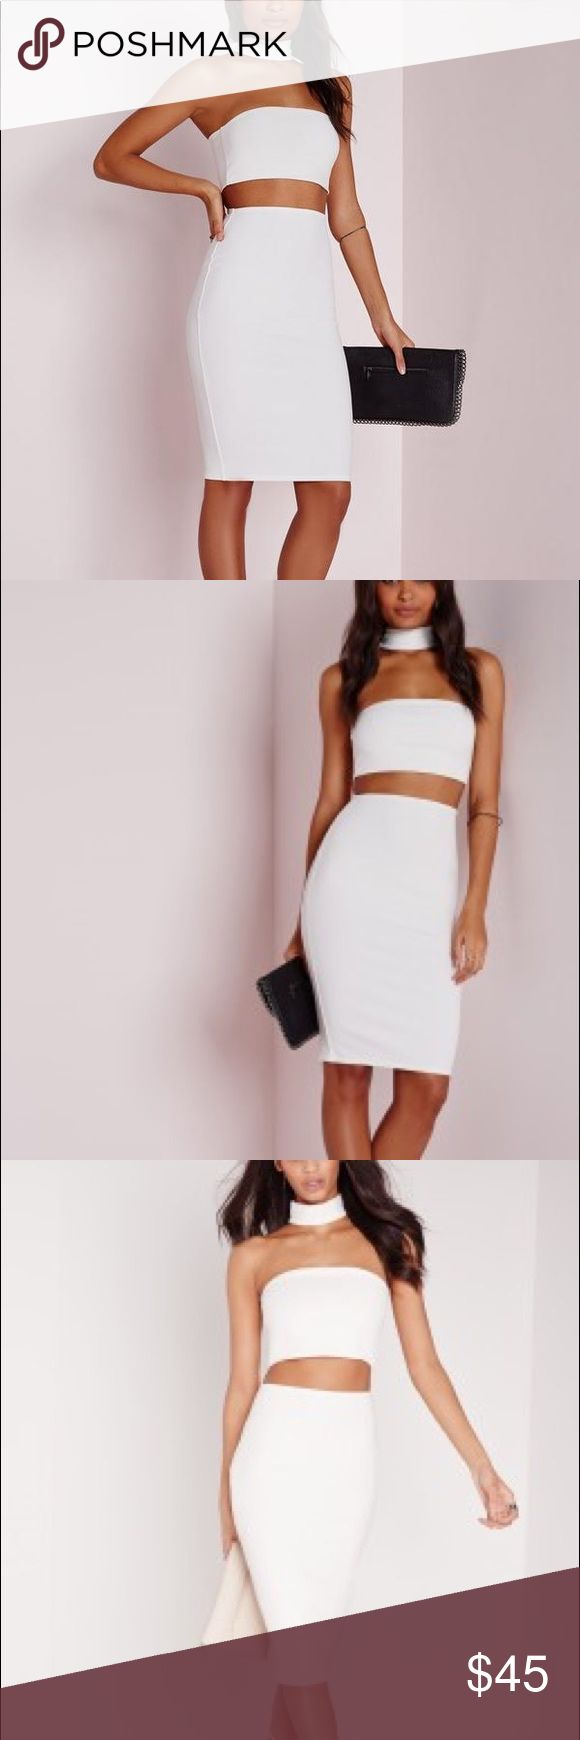 White Choker Dress NWT Beautiful white Choker cut out dress bandeau top - looks like two piece set from front but connected on the back - brand New - sold out online Missguided Dresses Strapless